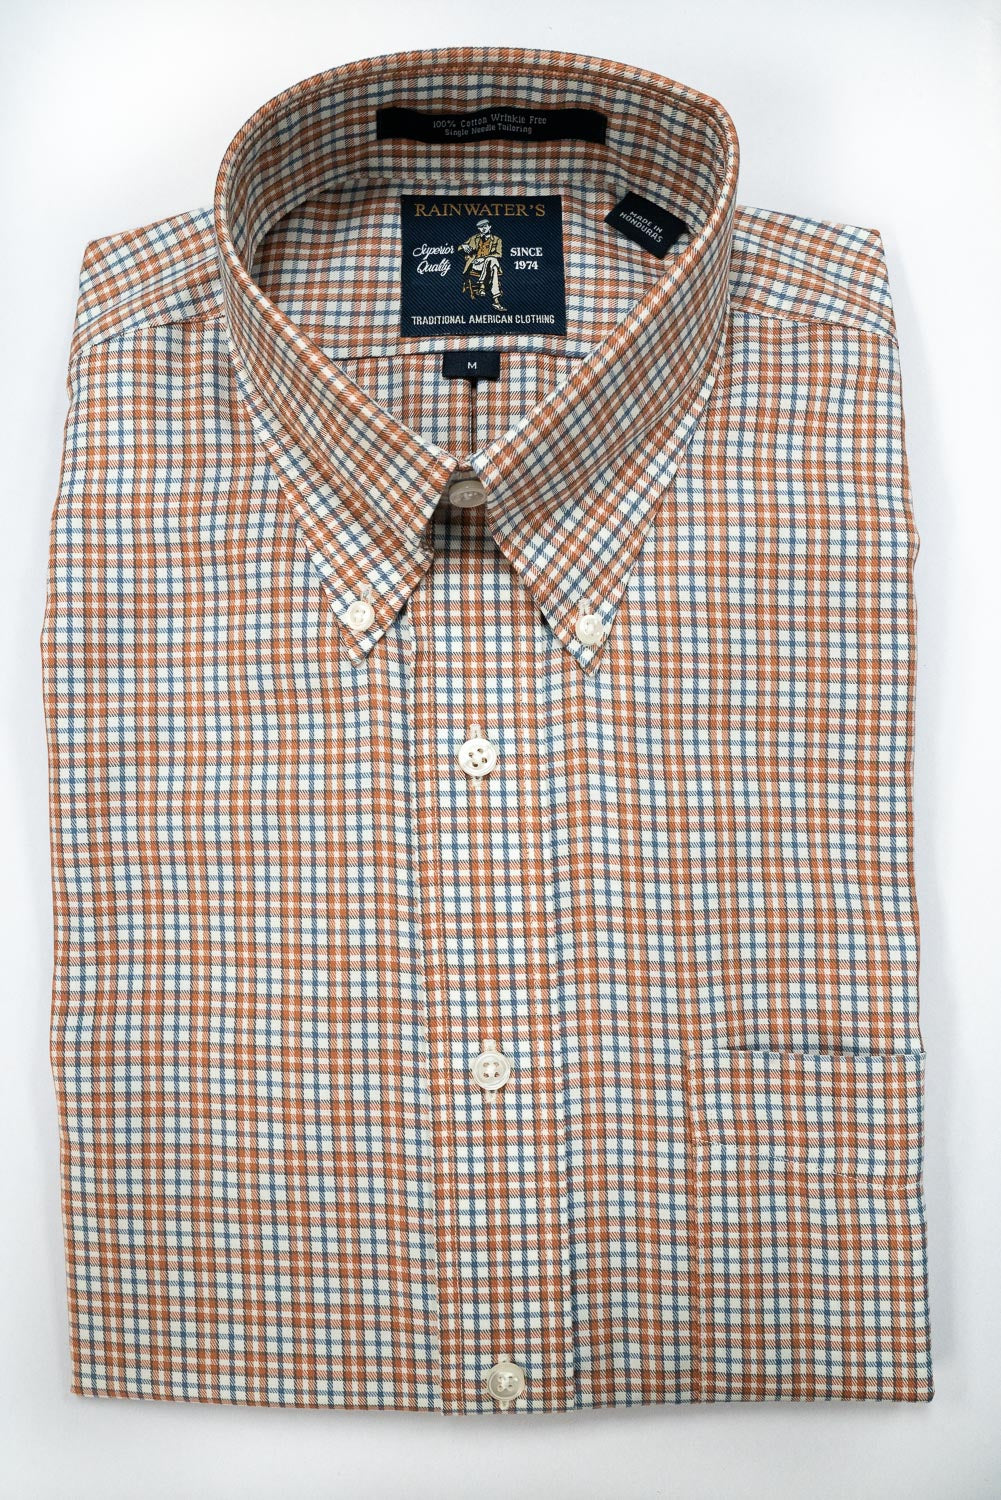 Rainwater's Apricot Small Plaid - Rainwater's Men's Clothing and Tuxedo Rental